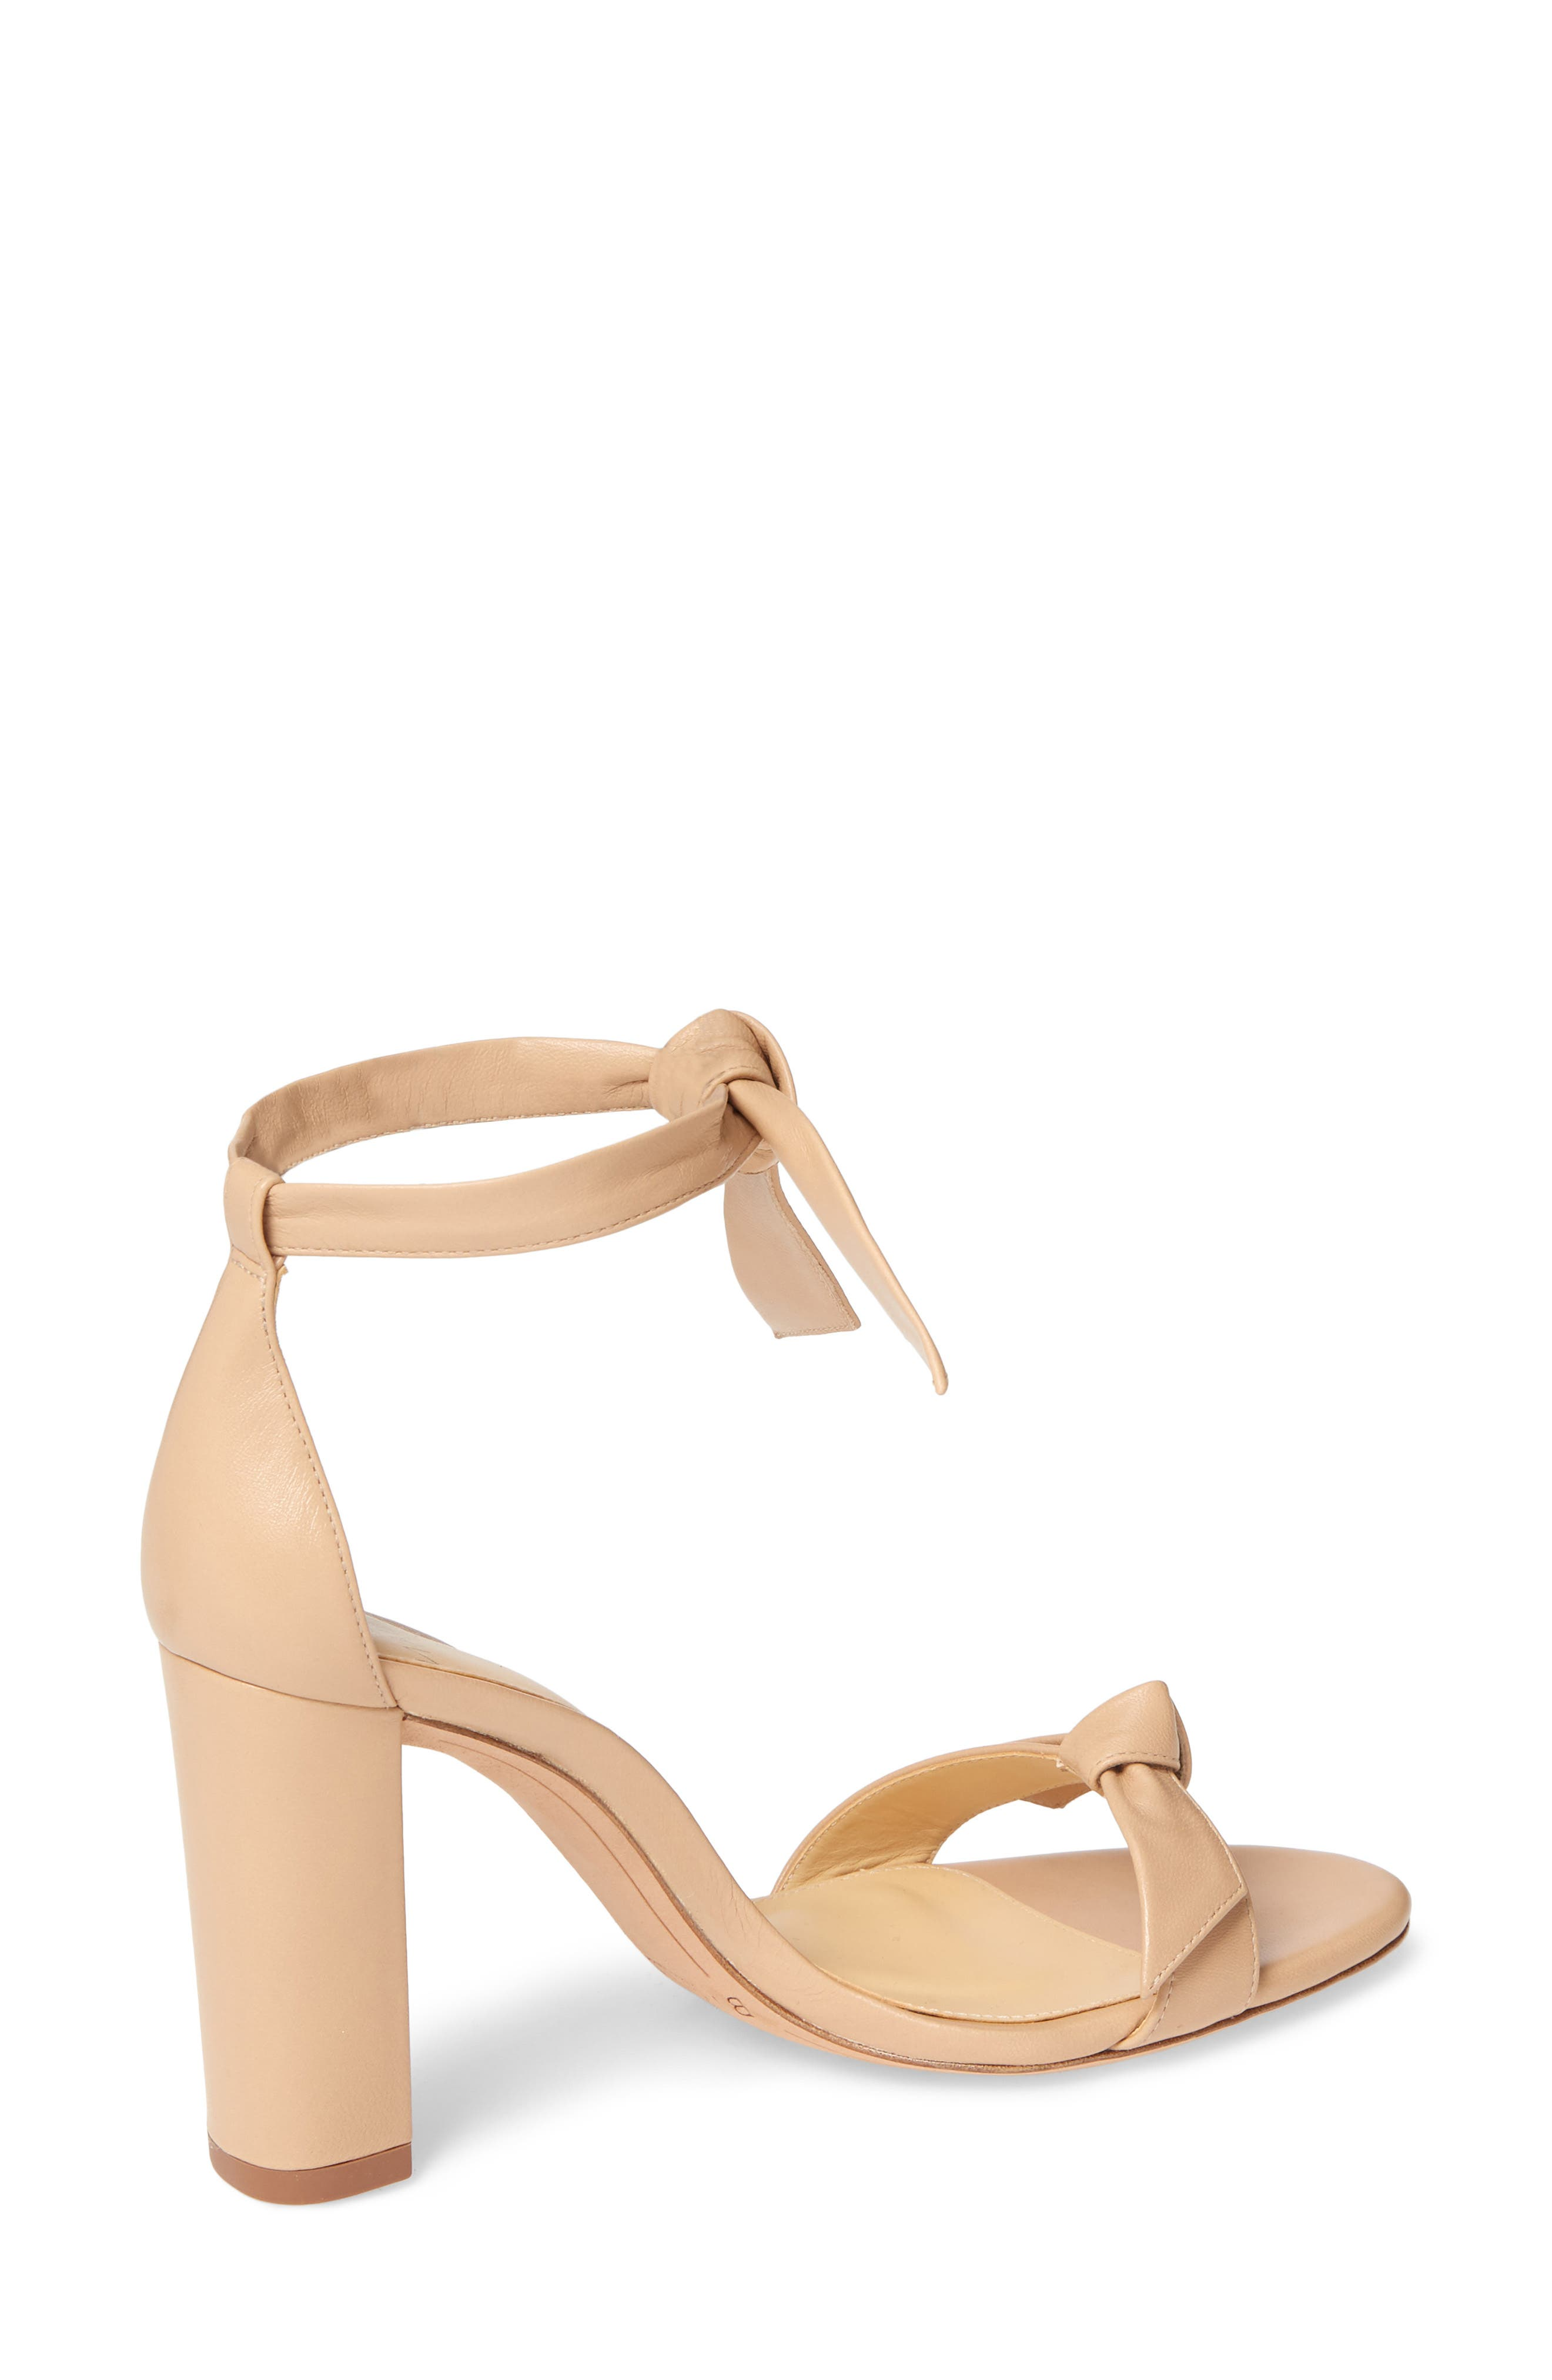 Clarita Knotted Sandal,                             Alternate thumbnail 2, color,                             NUDE LEATHER